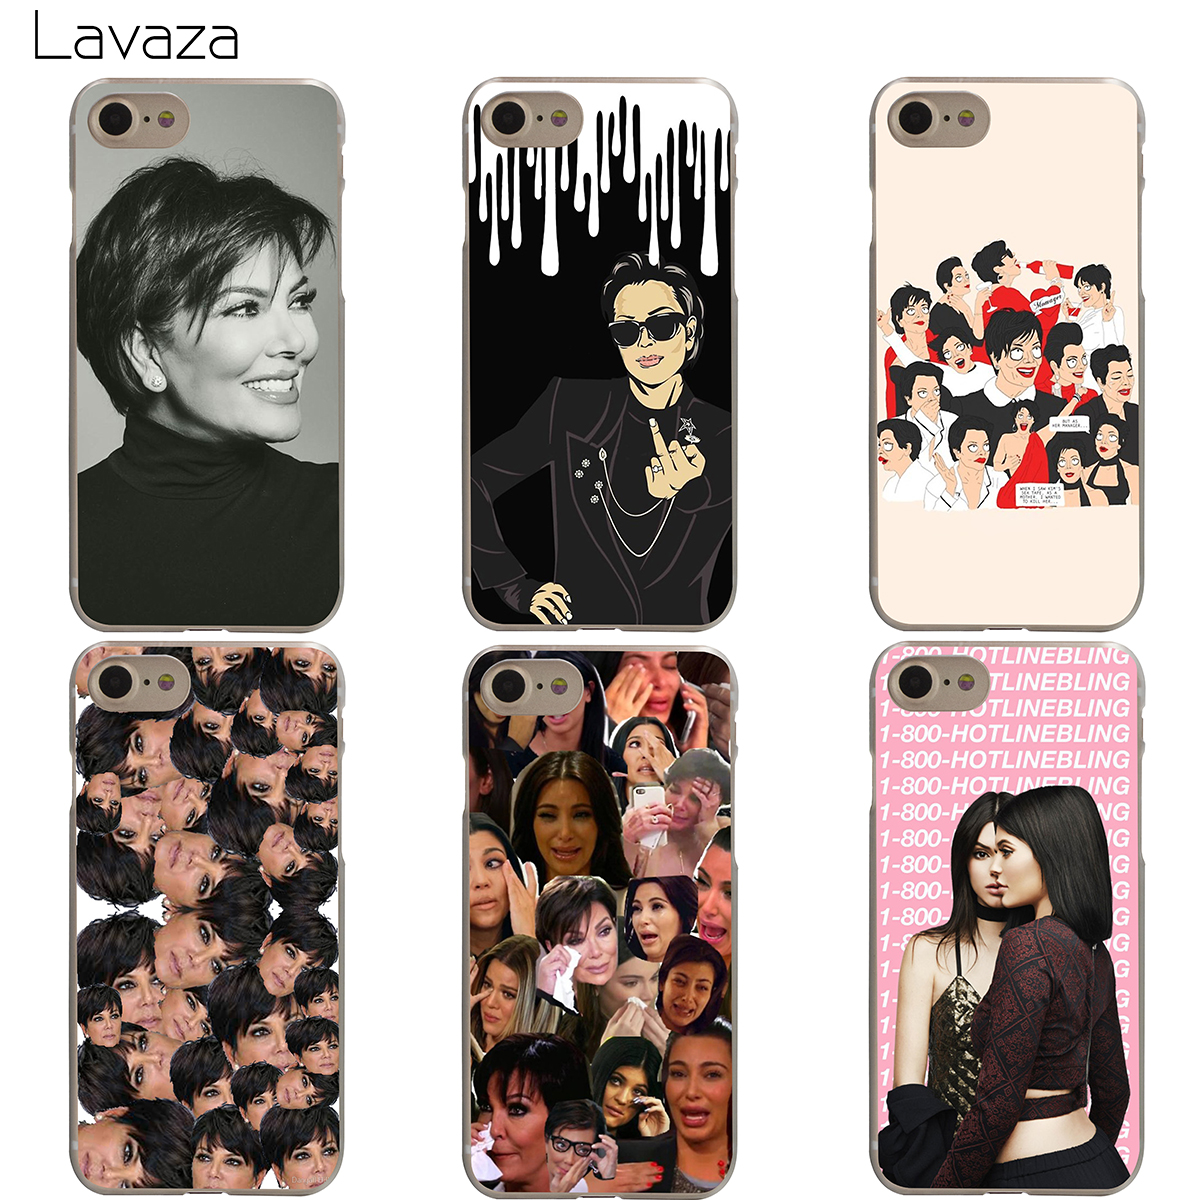 the latest 1bc1e c80b5 US $2.14 5% OFF|Lavaza Alla Pugacheva Nyusha t.A.T.u. Kris Jenner Case for  iPhone XS Max XR X 8 7 6 6S Plus 5 5S SE-in Half-wrapped Case from ...